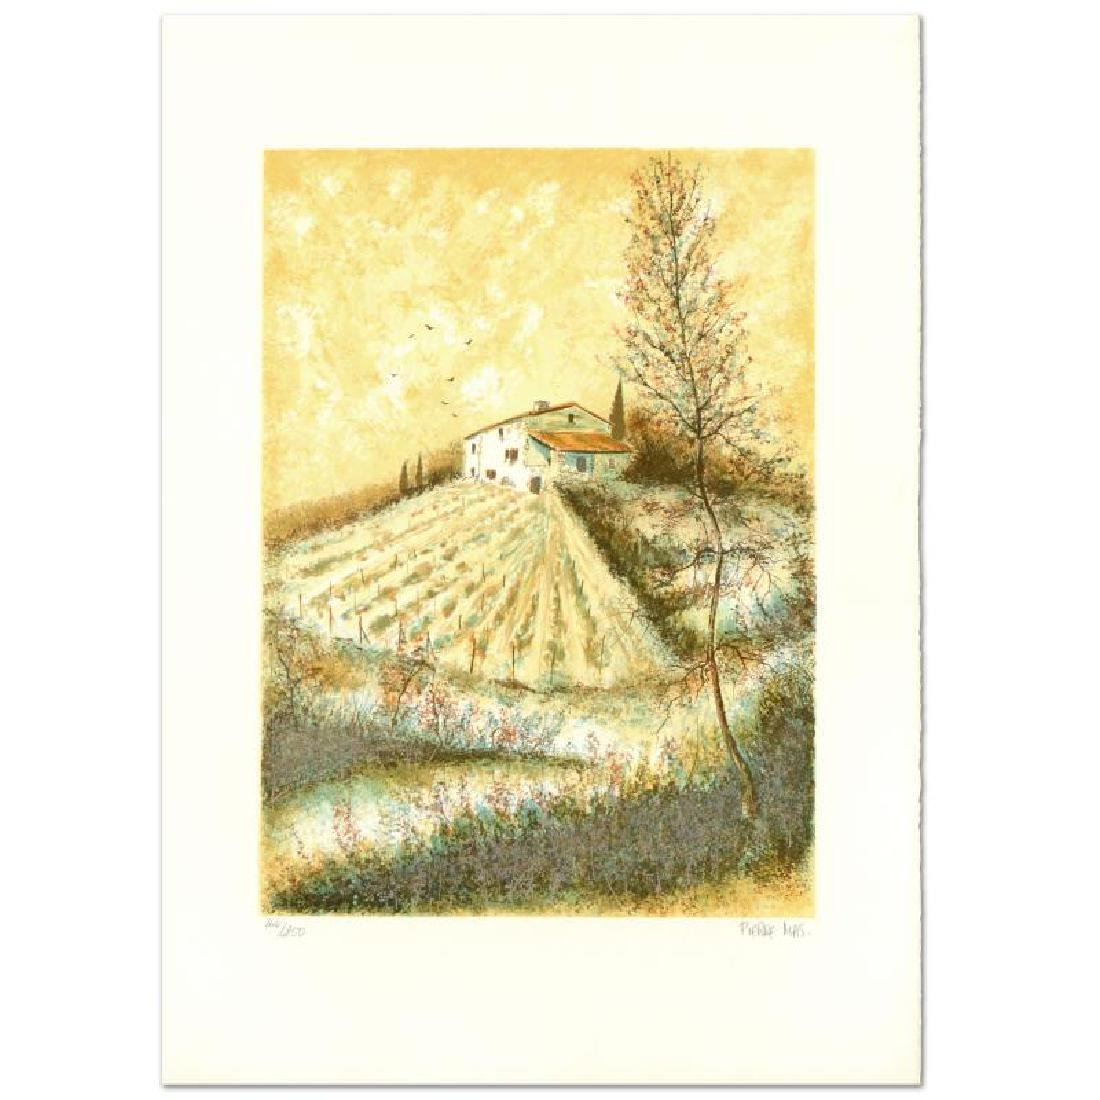 "Pierre Mas, ""Farm"" Limited Edition Lithograph, Numbered"